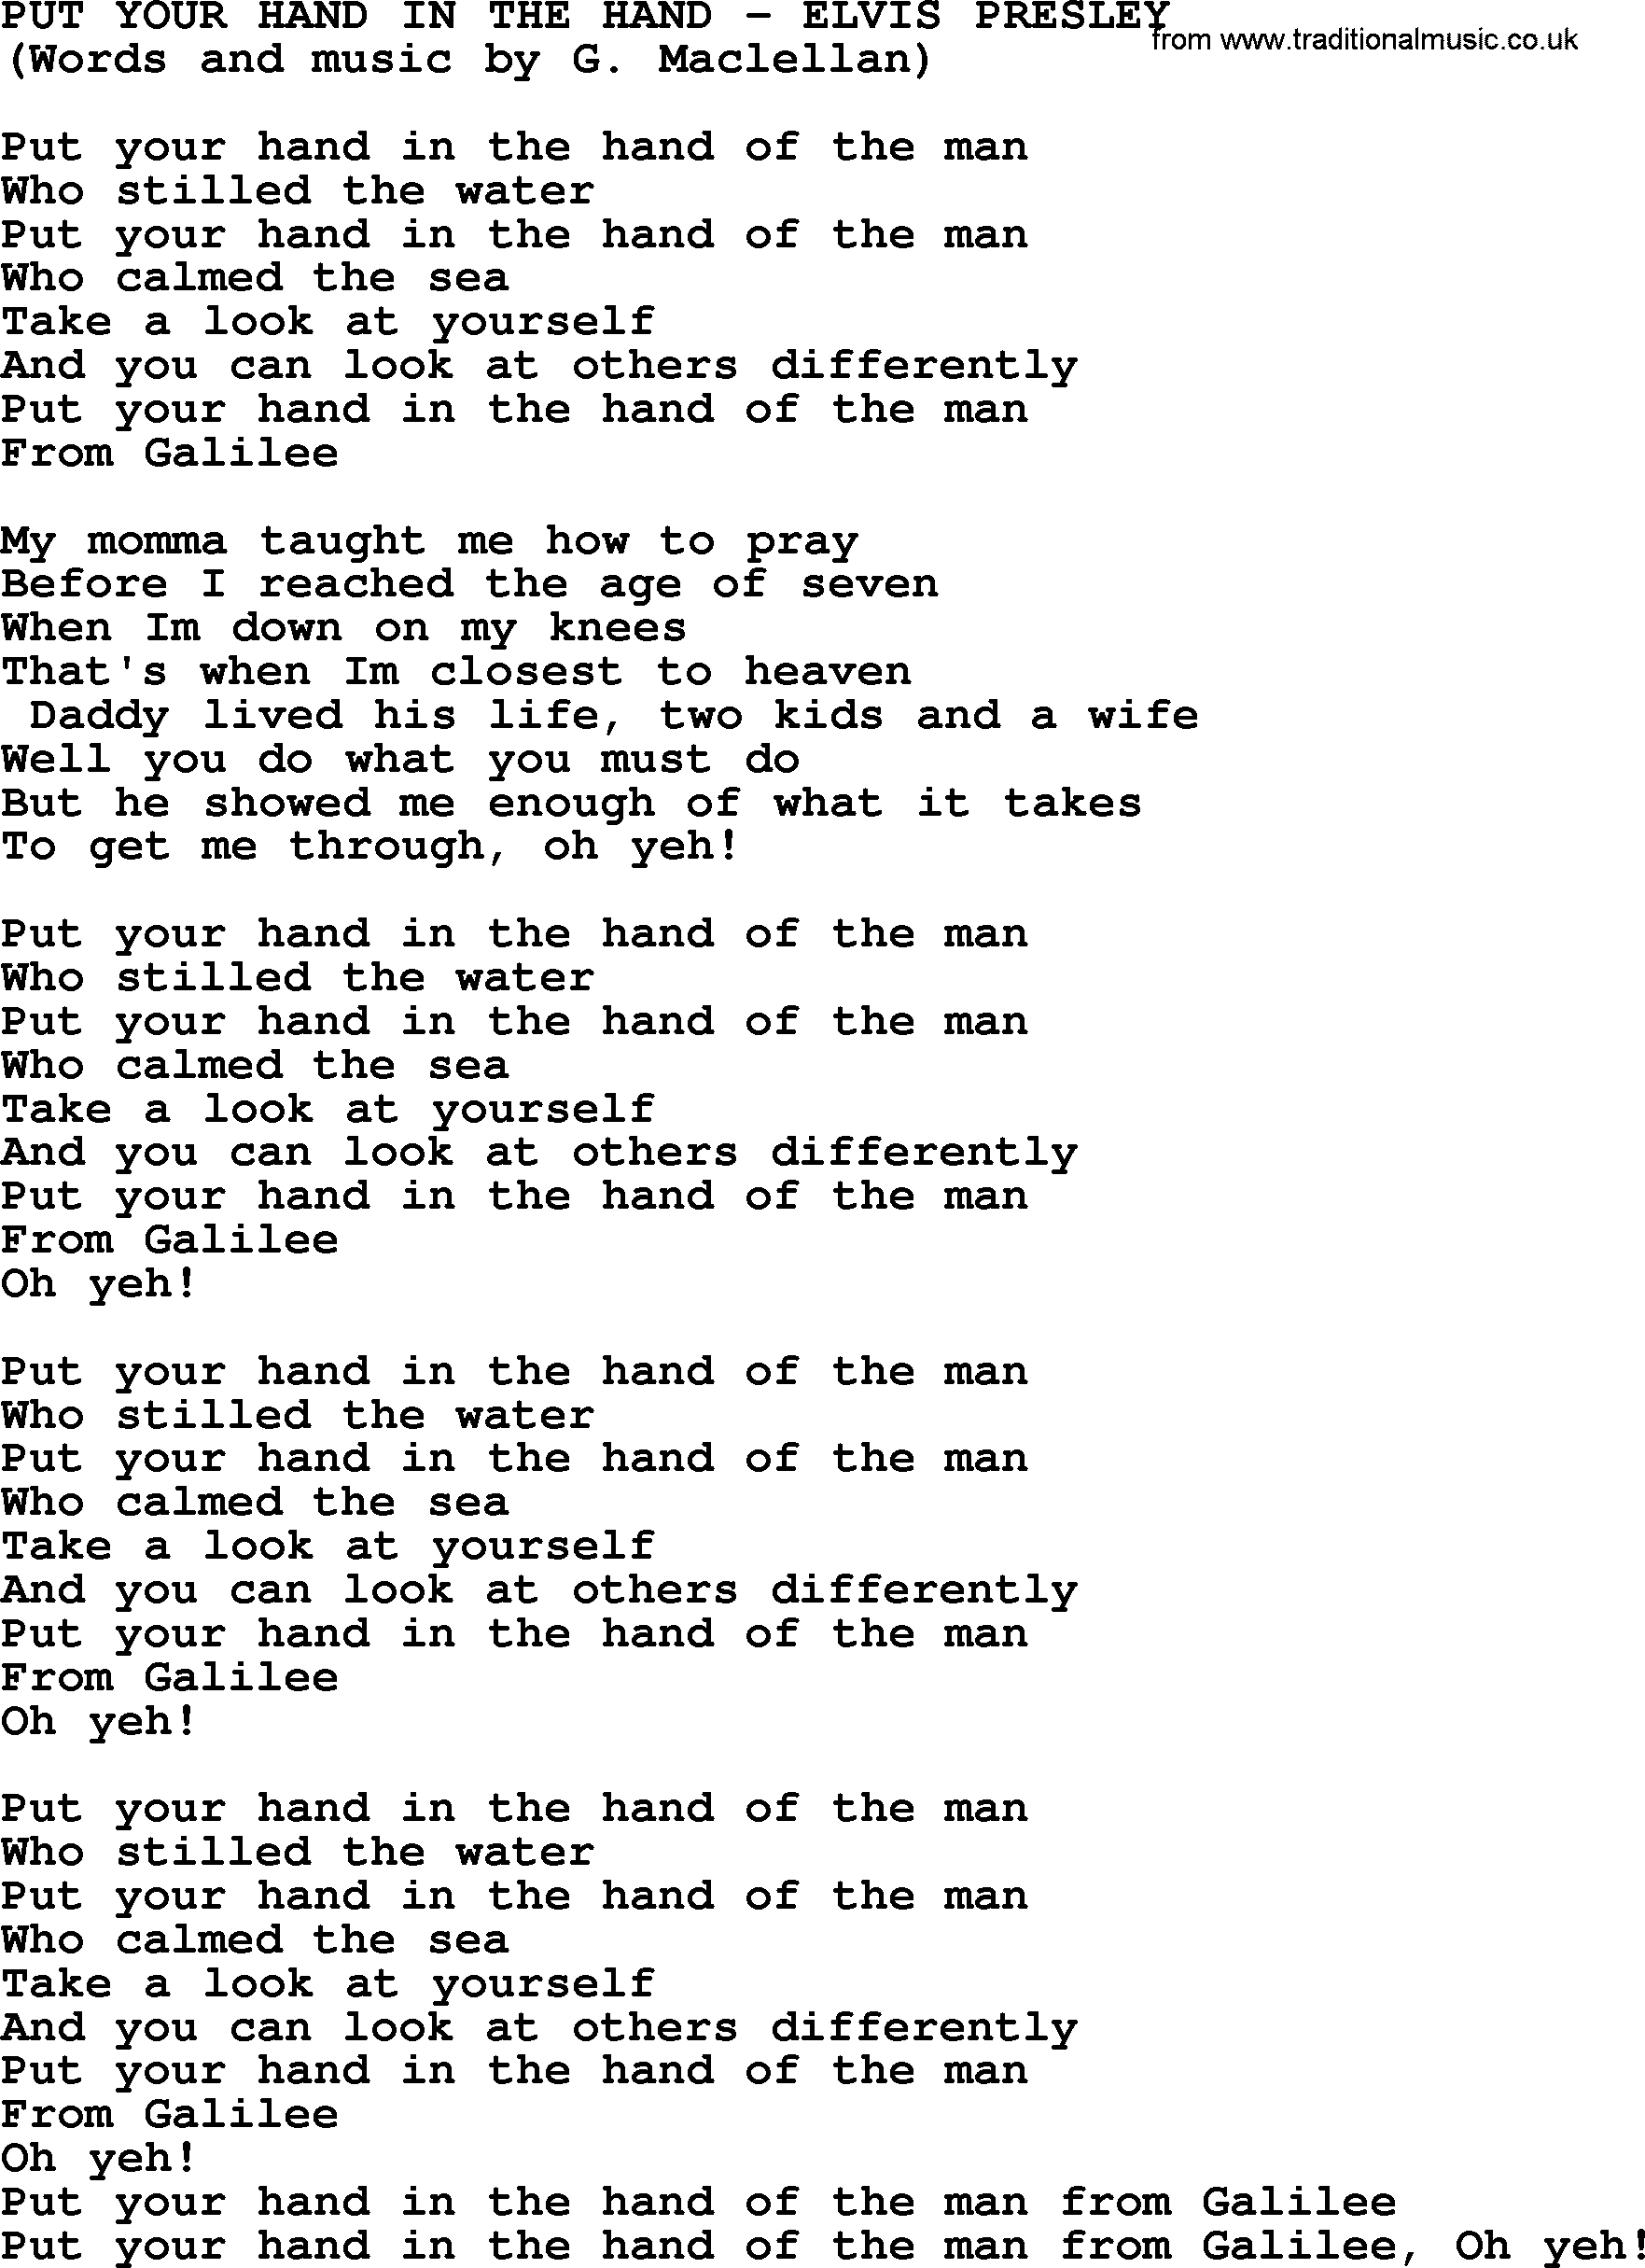 Put Your Hand In The Hand by Elvis Presley   lyrics